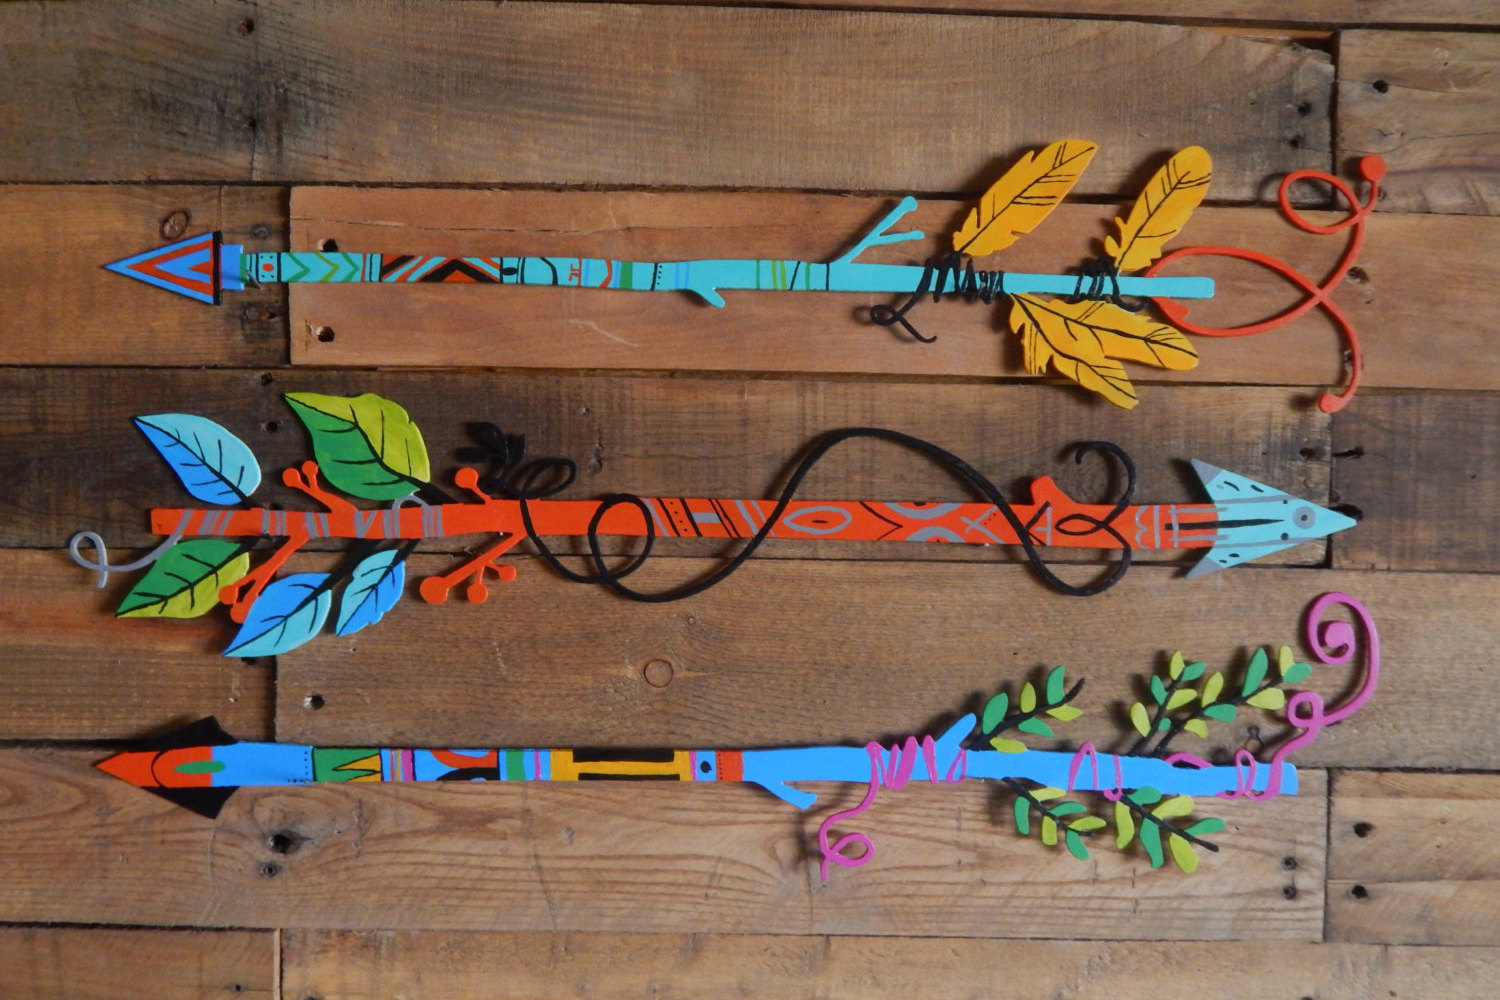 Western Metal Wall Art – Boho Decor – Hand Painted Arrows Feathers Pertaining To Most Recent Brown Metal Tribal Arrow Wall Decor (View 8 of 20)